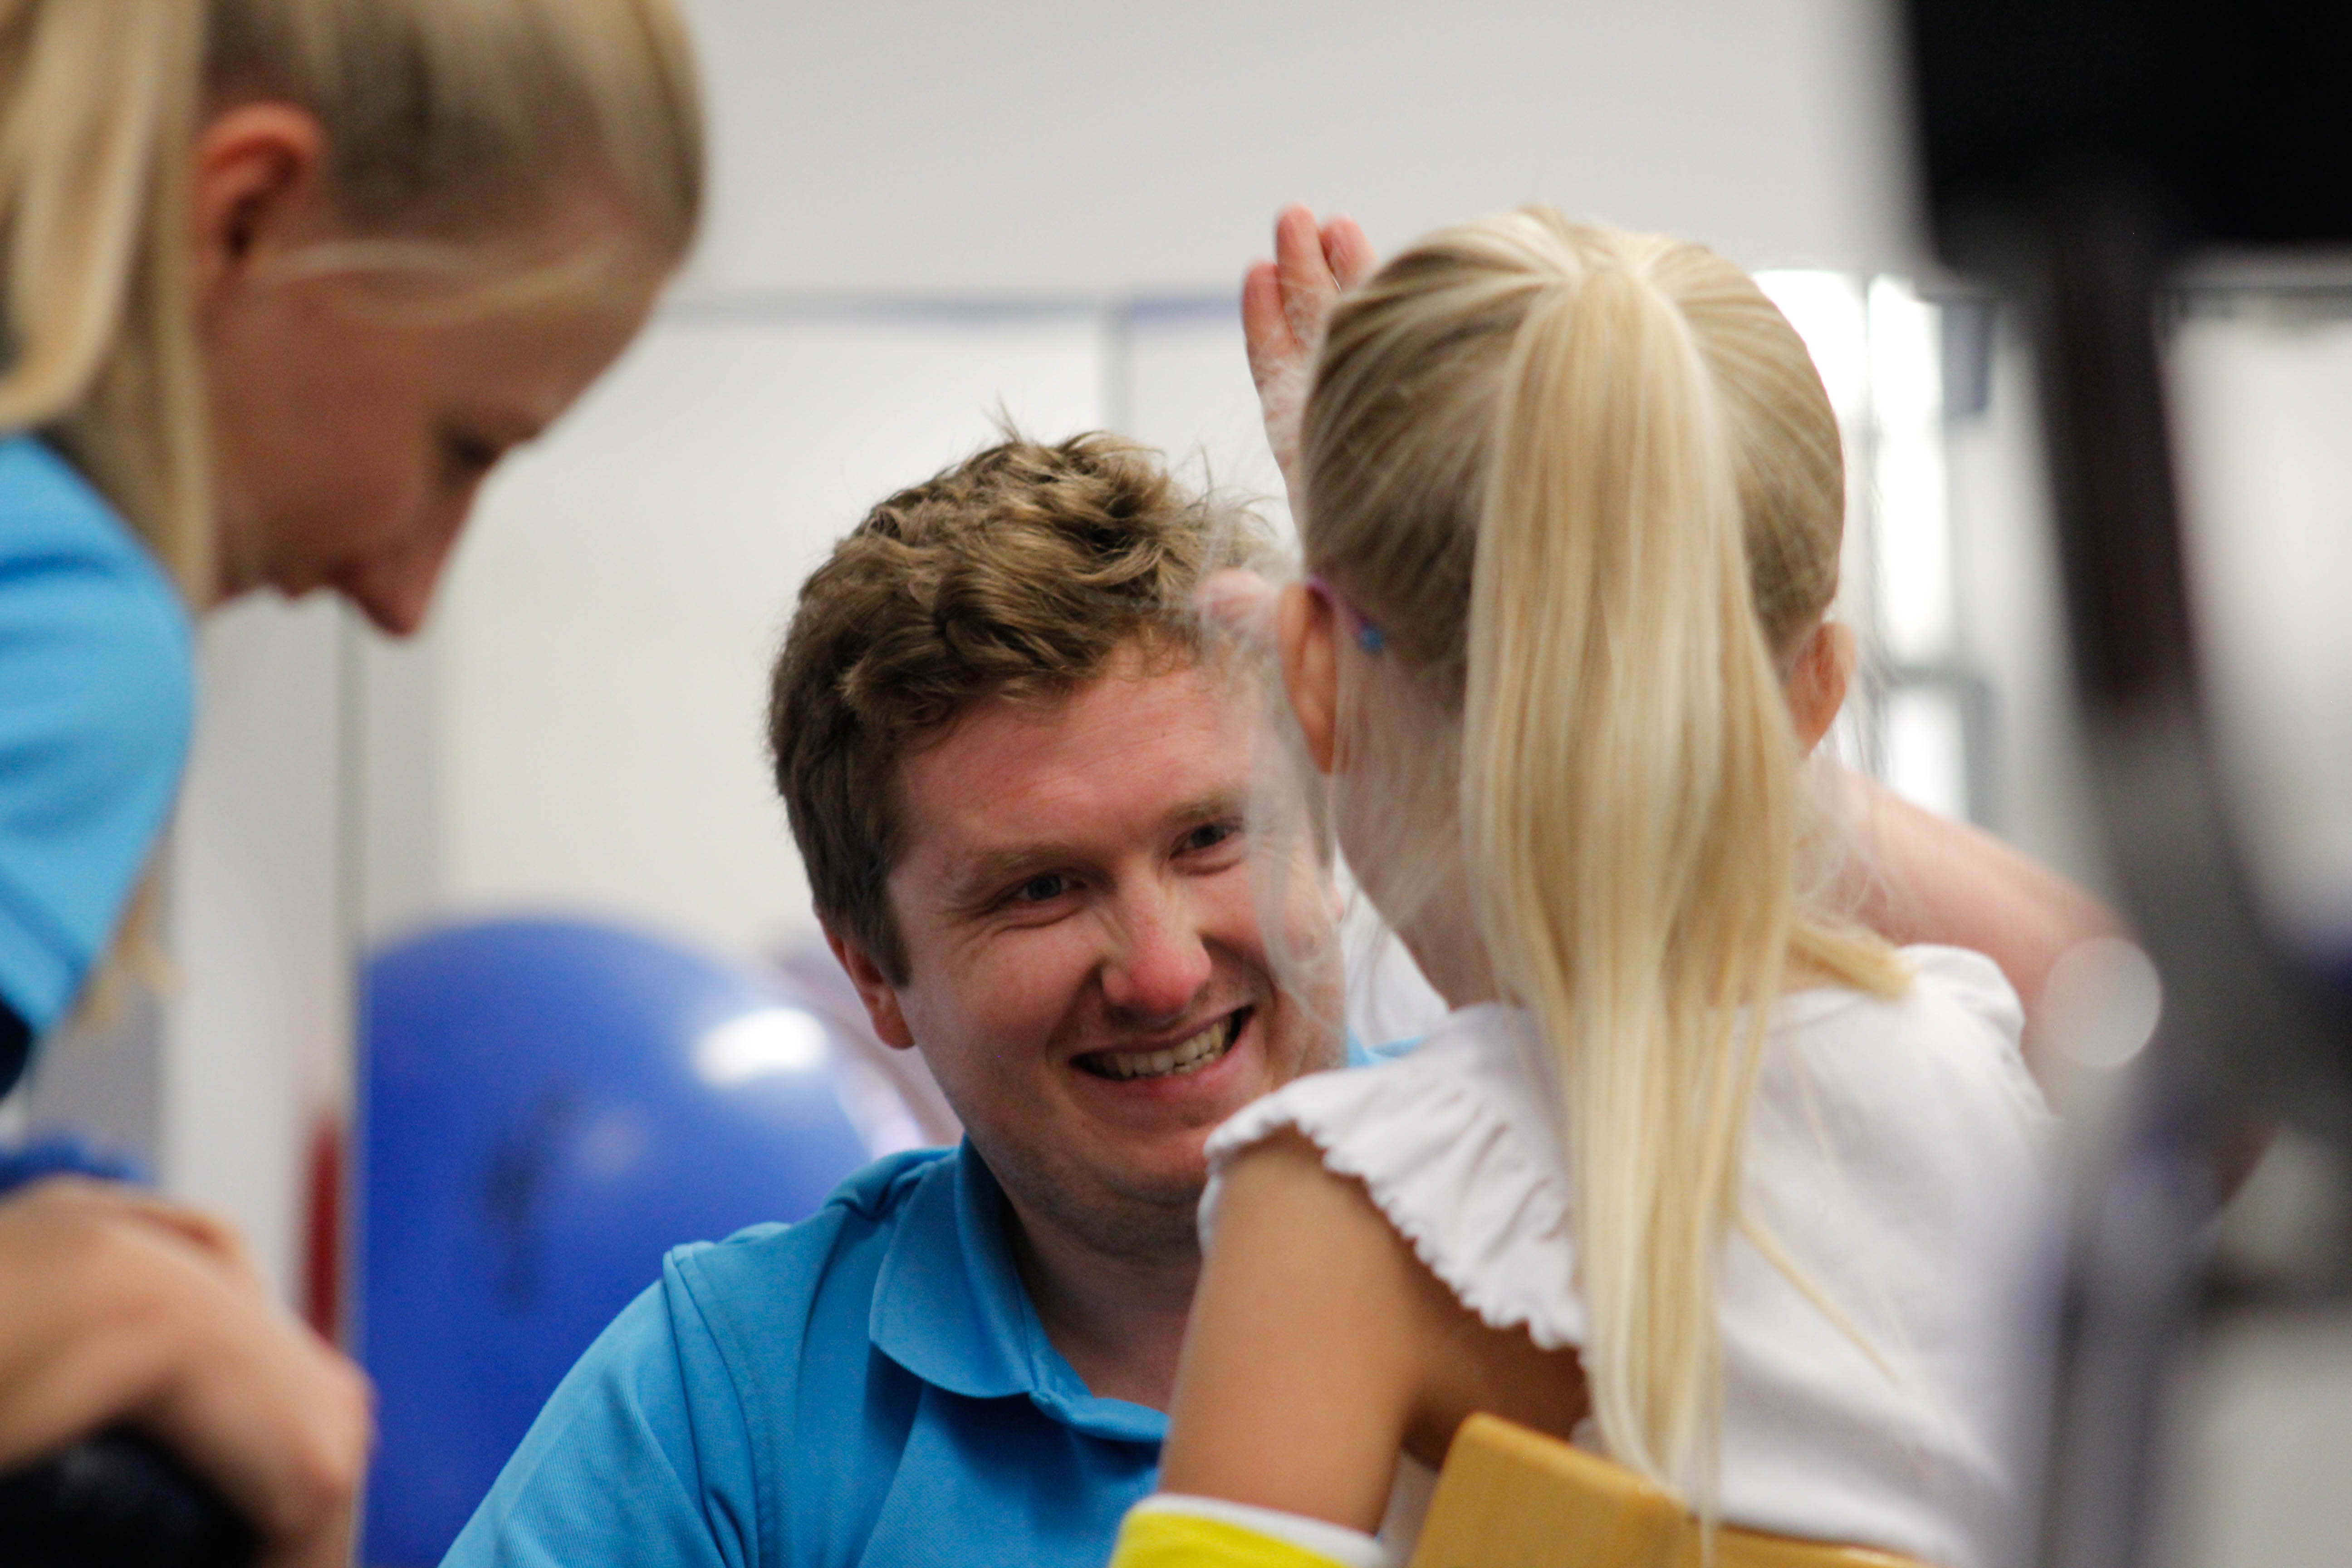 CIMT therapist smiling at small child.